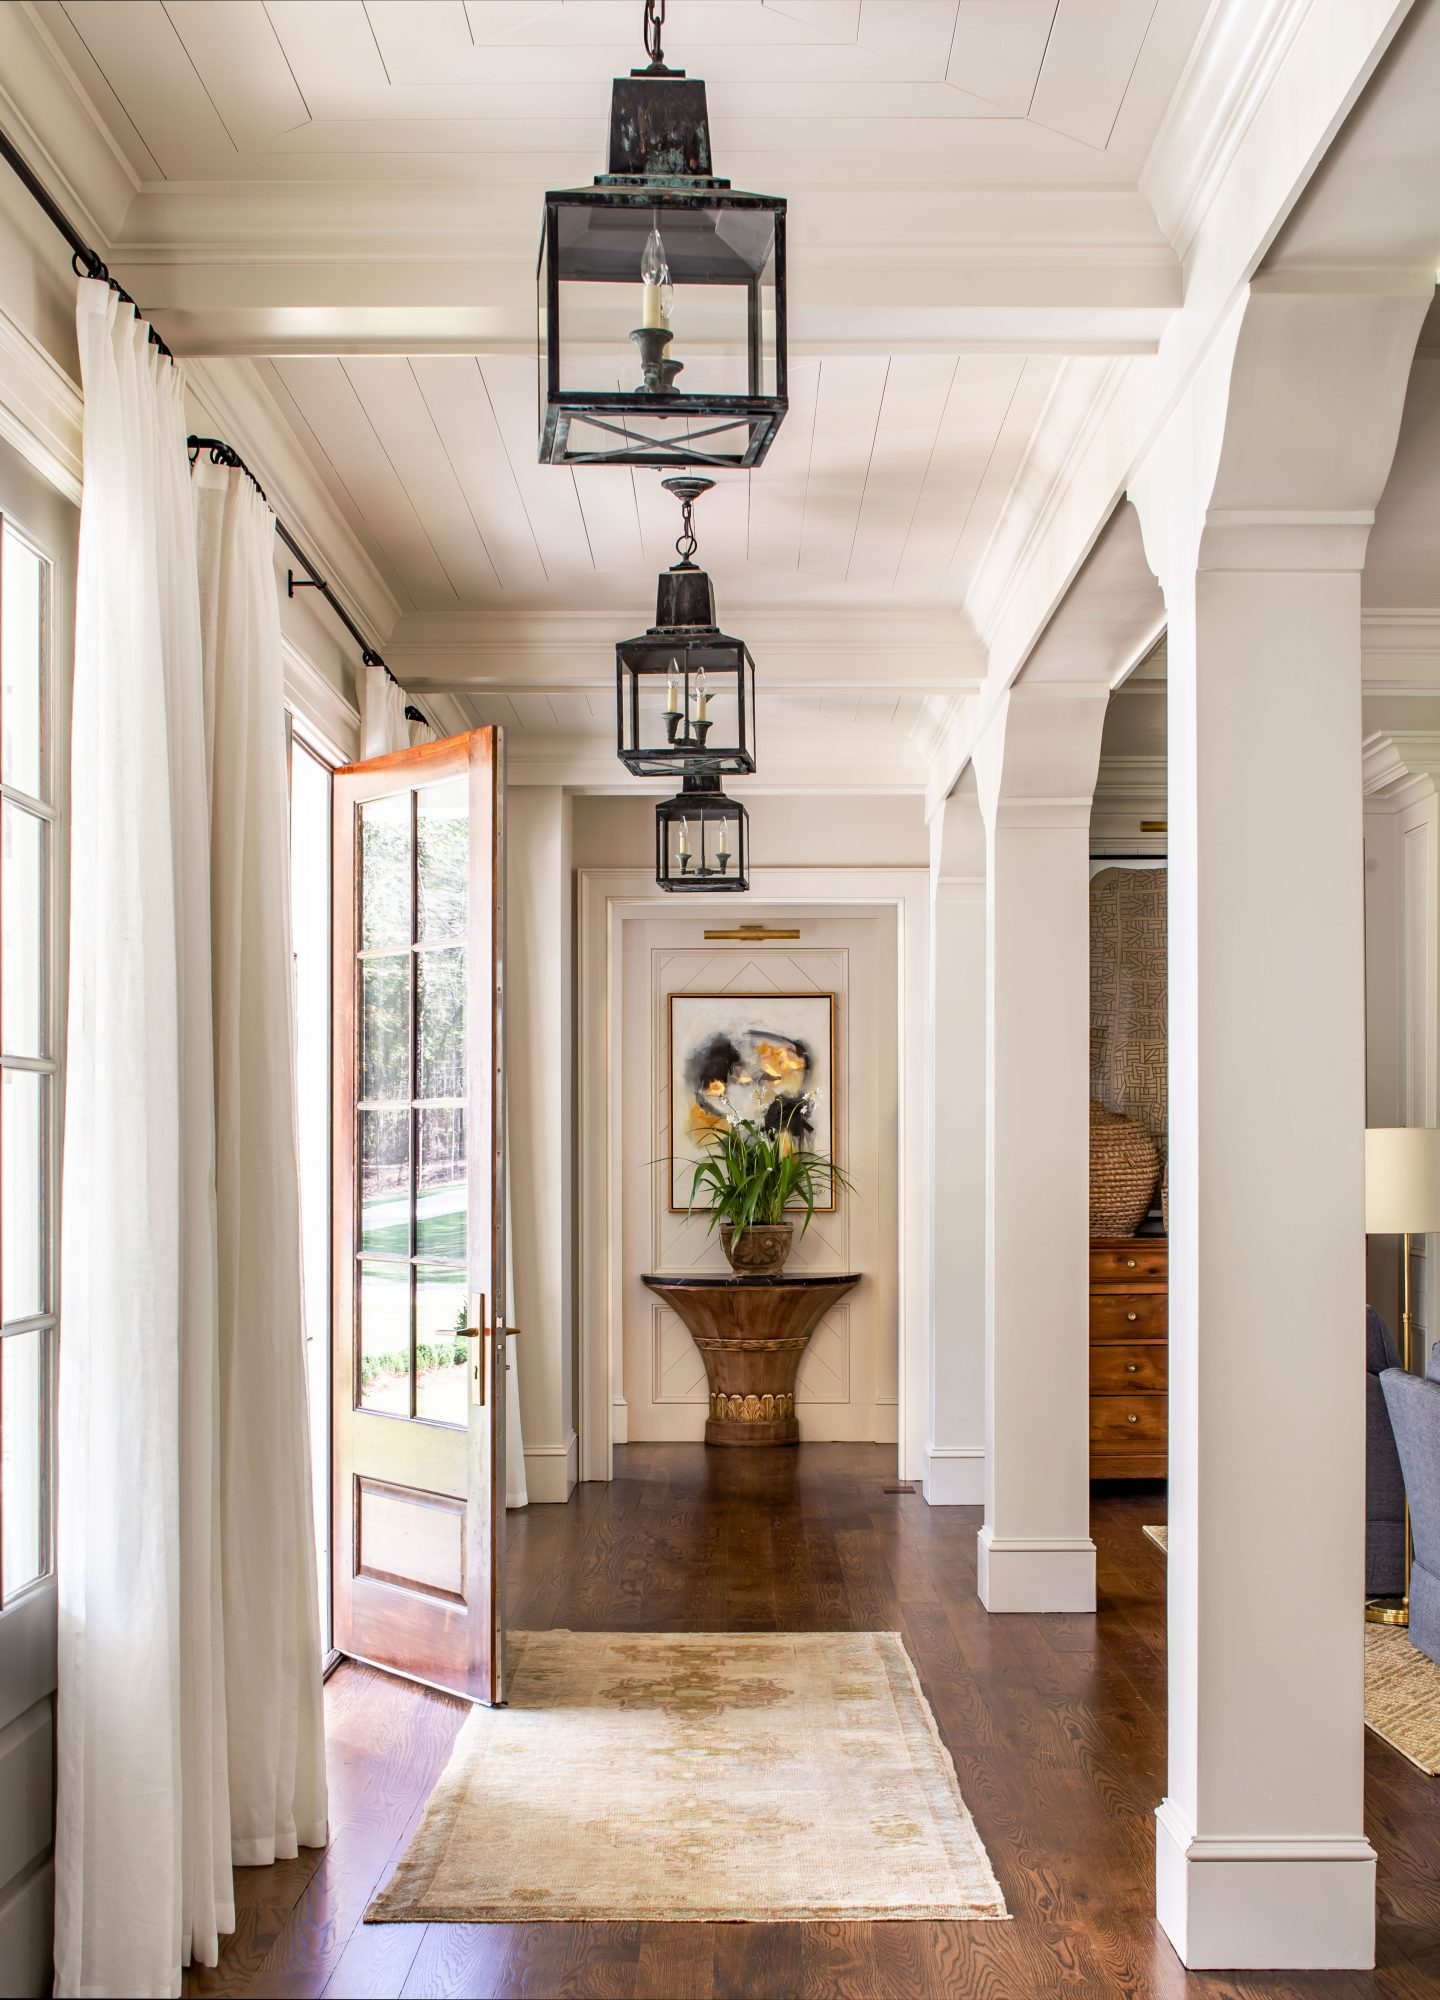 Entry Hall with Lanterns and Pillars